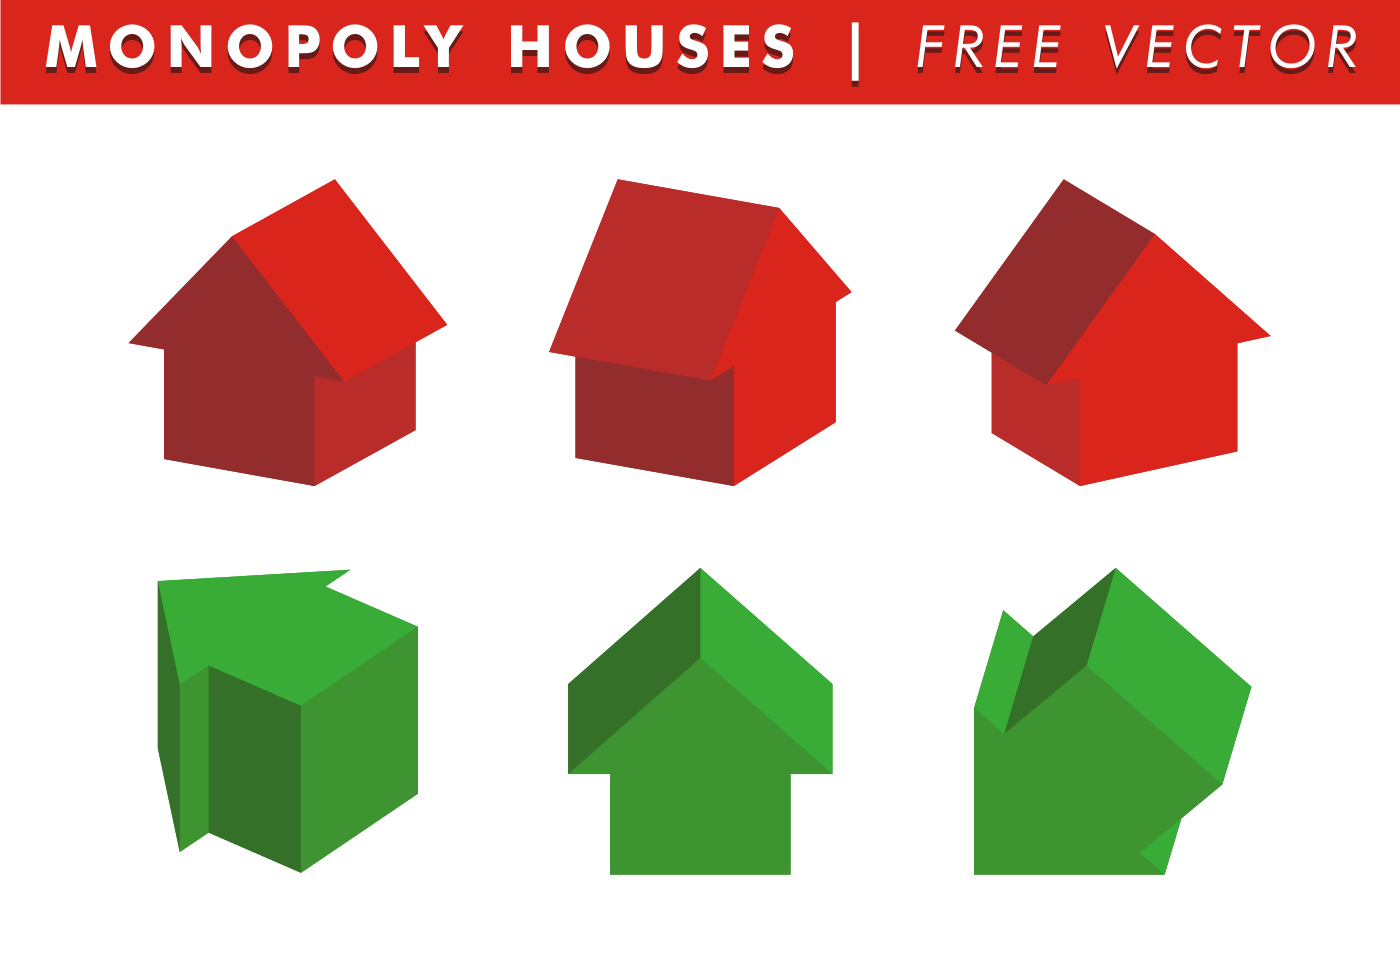 monopoly houses free vector download free vector art